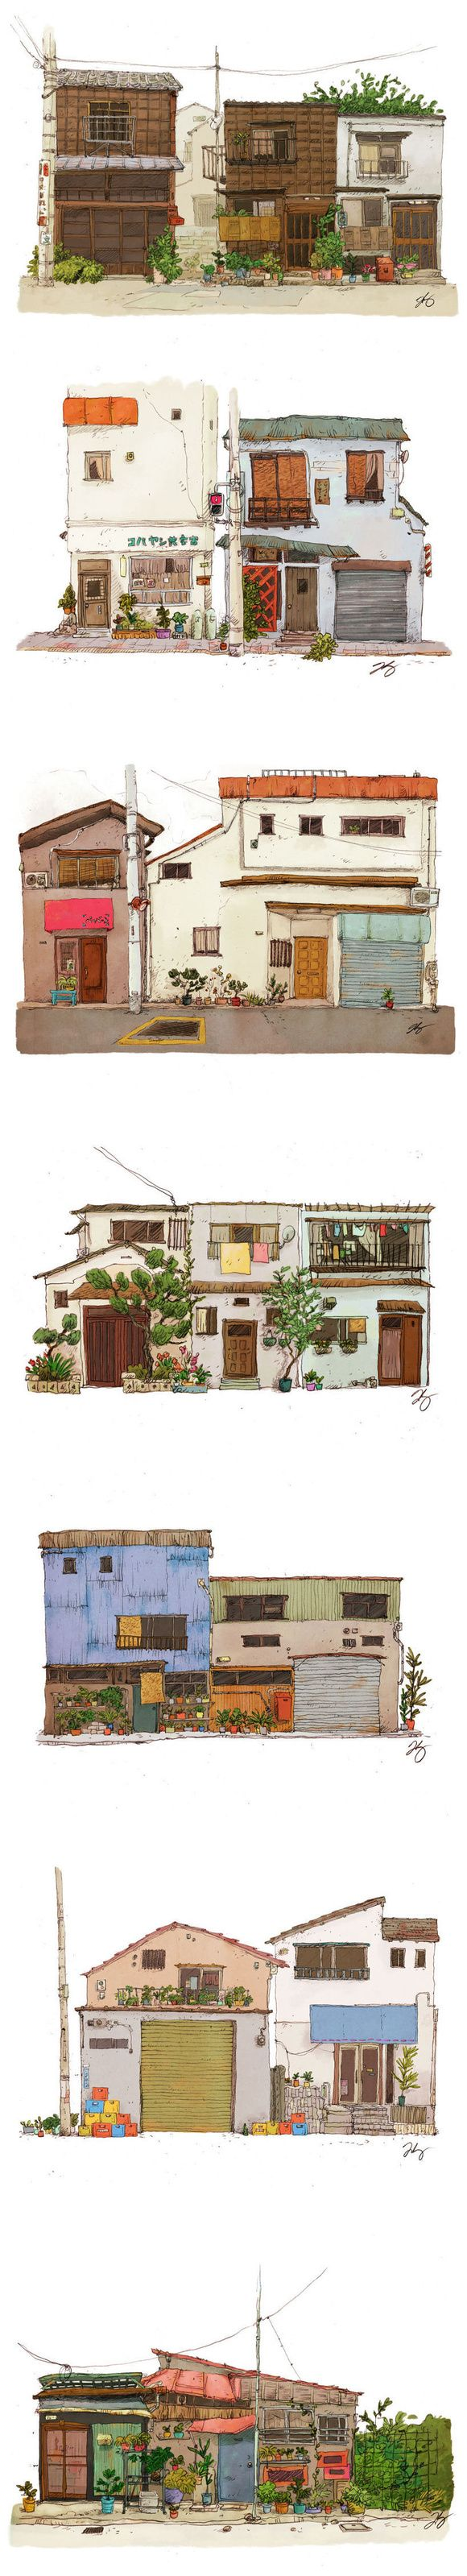 家の樣貌 ~ ❤️                                  gorgeous house illustrations